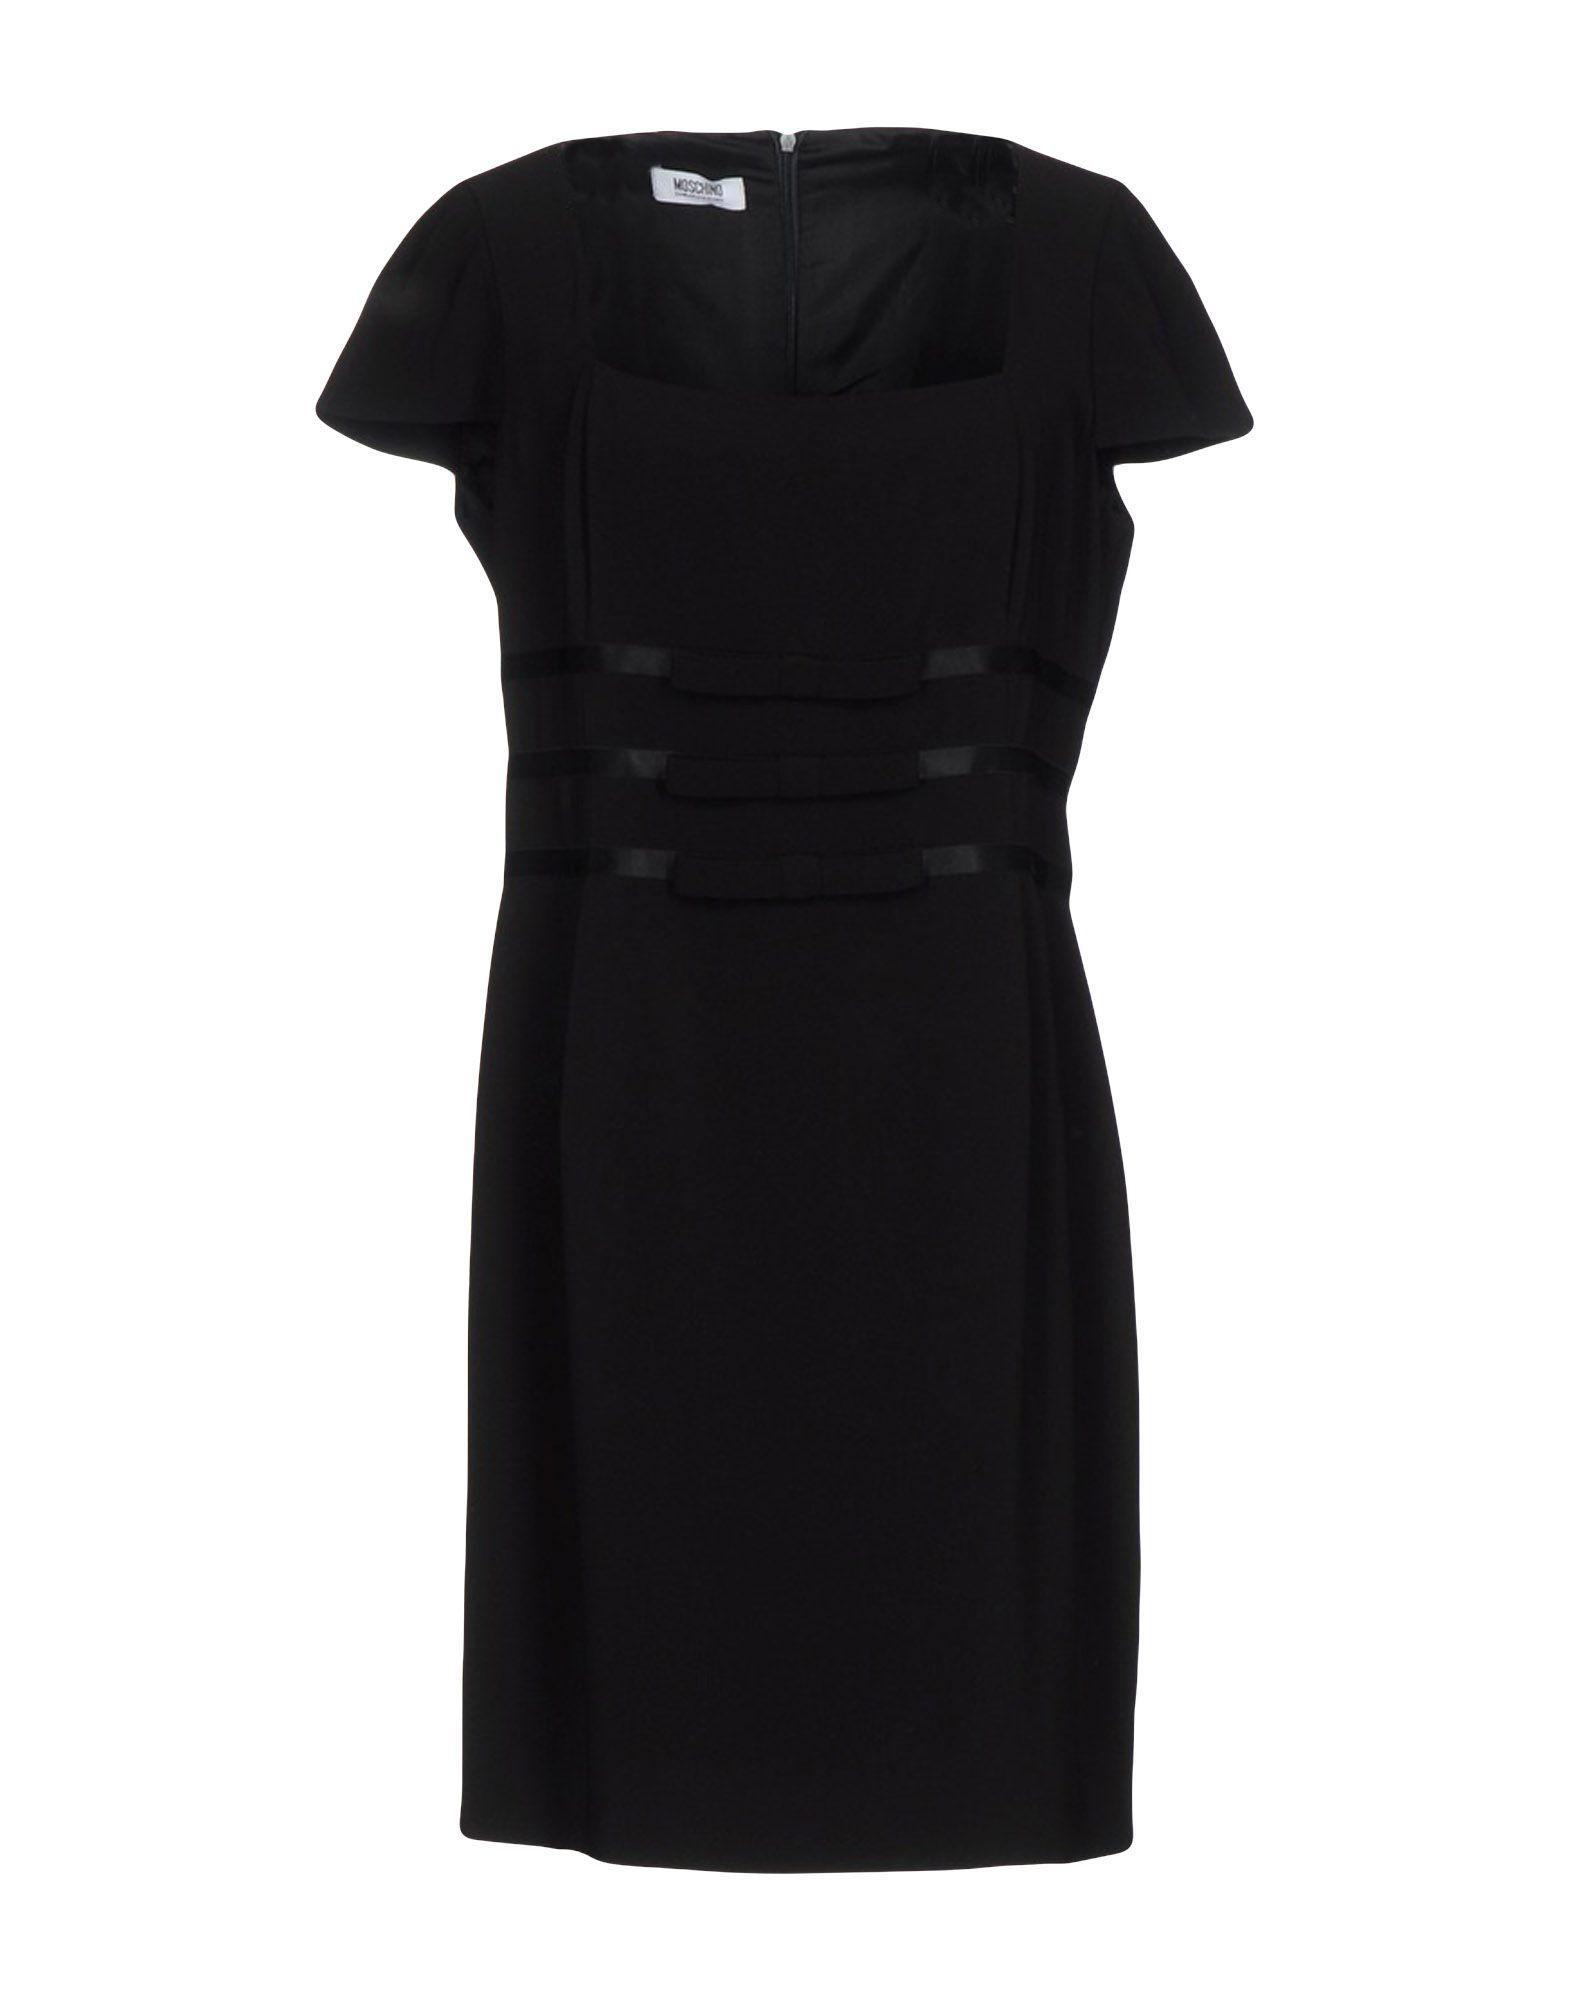 DRESSES Moschino Cheap And Chic Black Woman Polyester